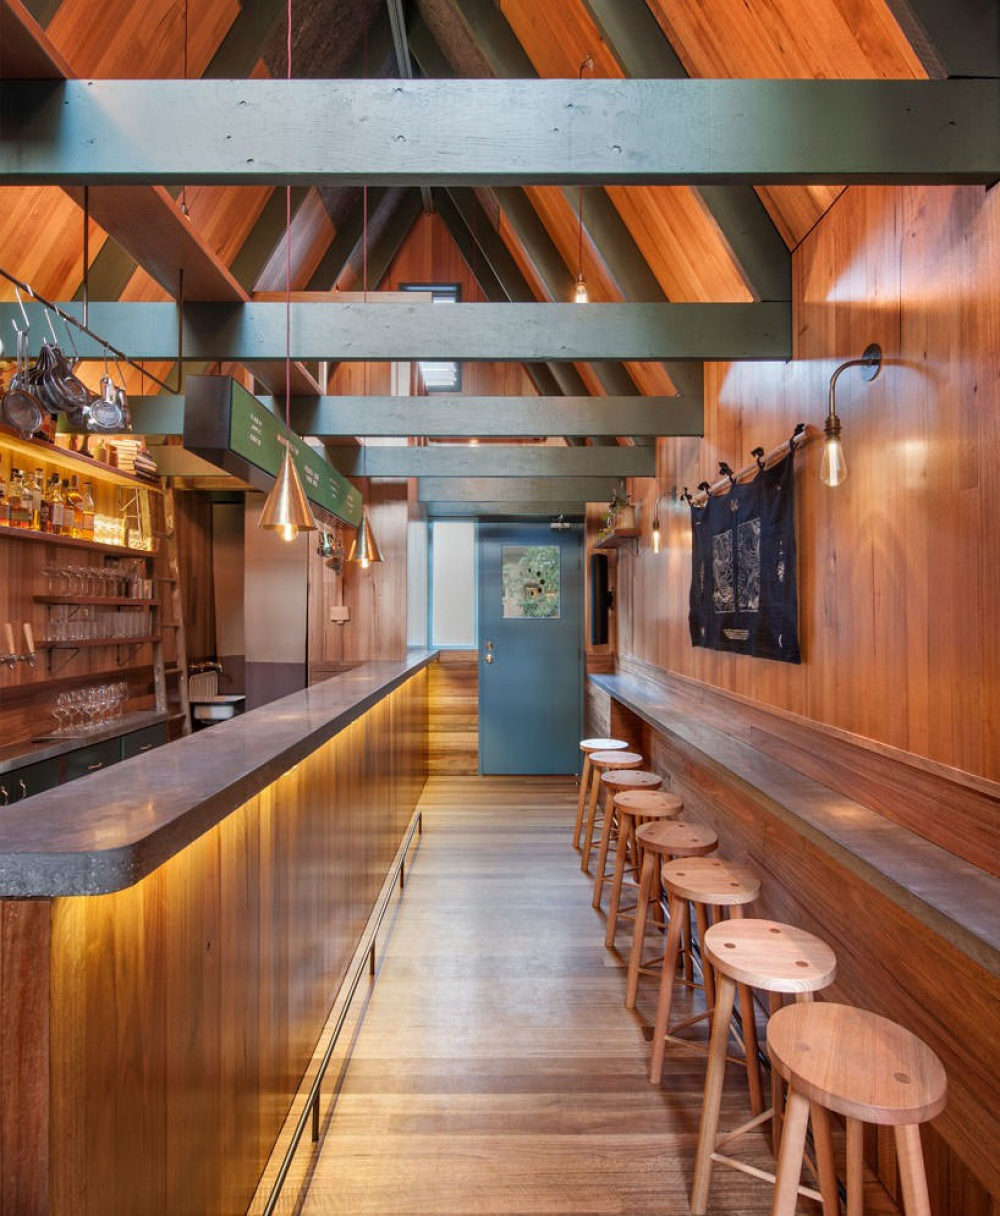 518905-1000-1454565135-A-bar-in-Adelaide-thats-just-like-the-tiny-house-from-Up1